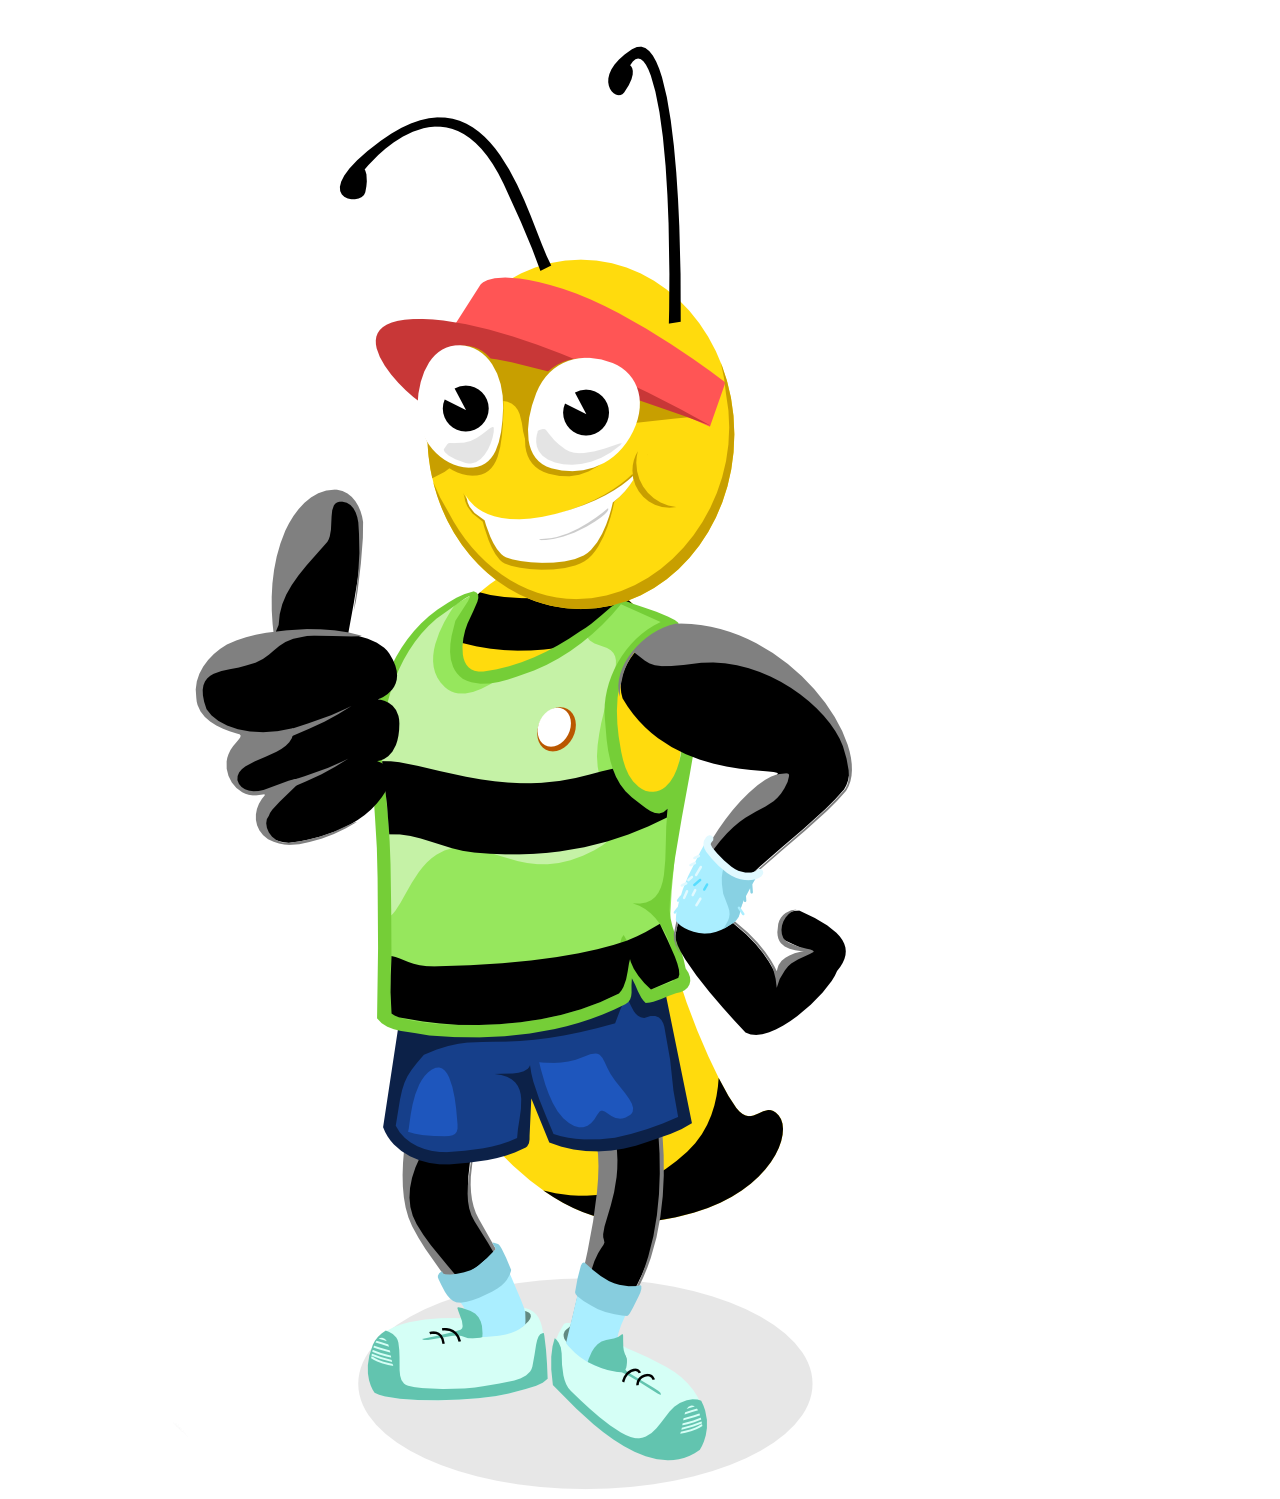 Pictures Of Animated Bees - ClipArt Best